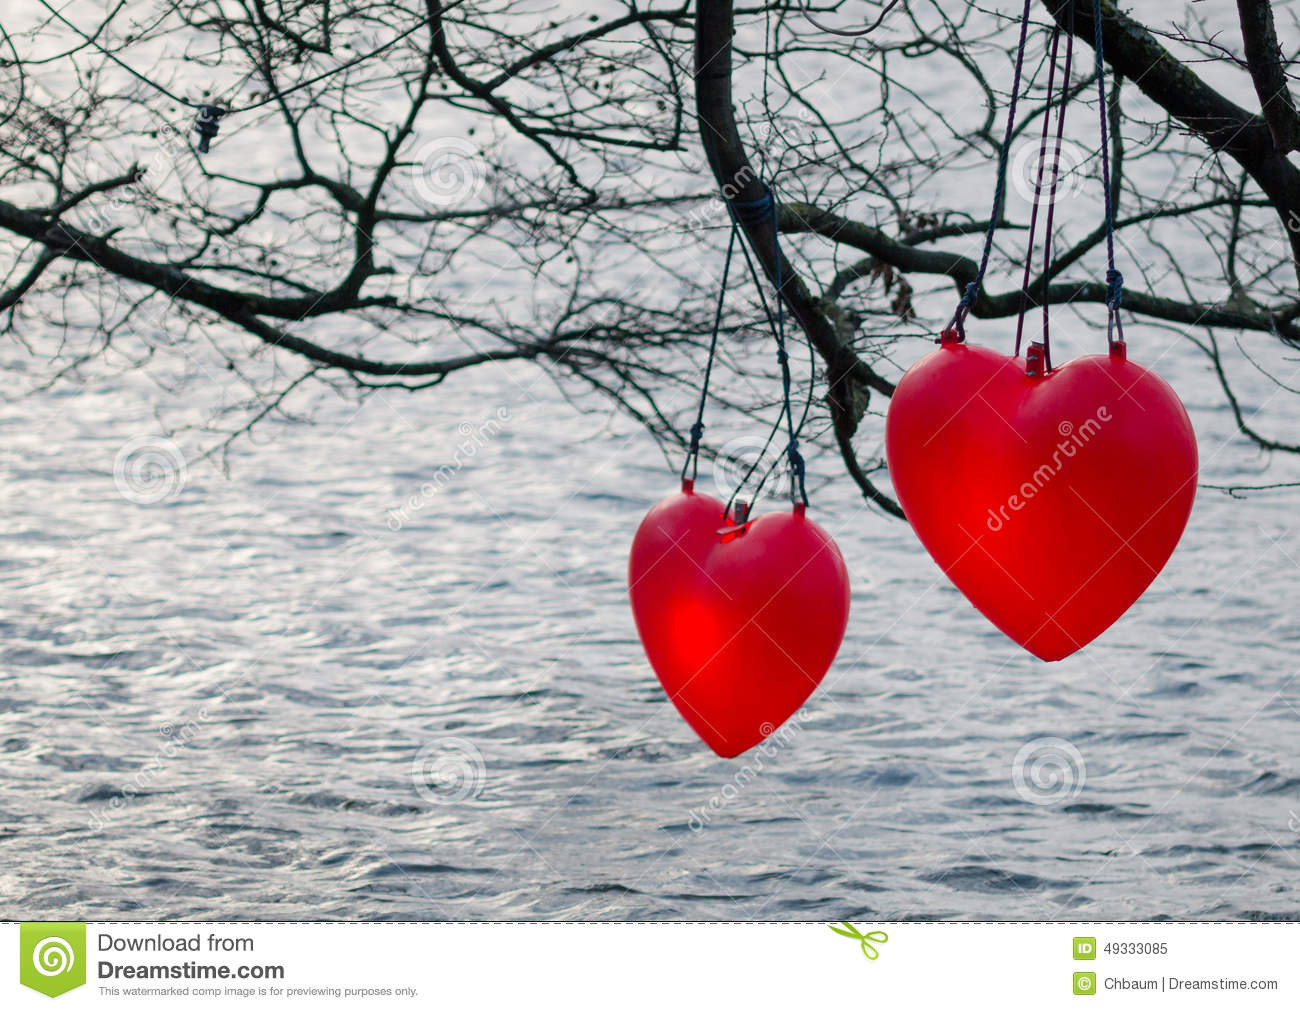 Hearts in the water